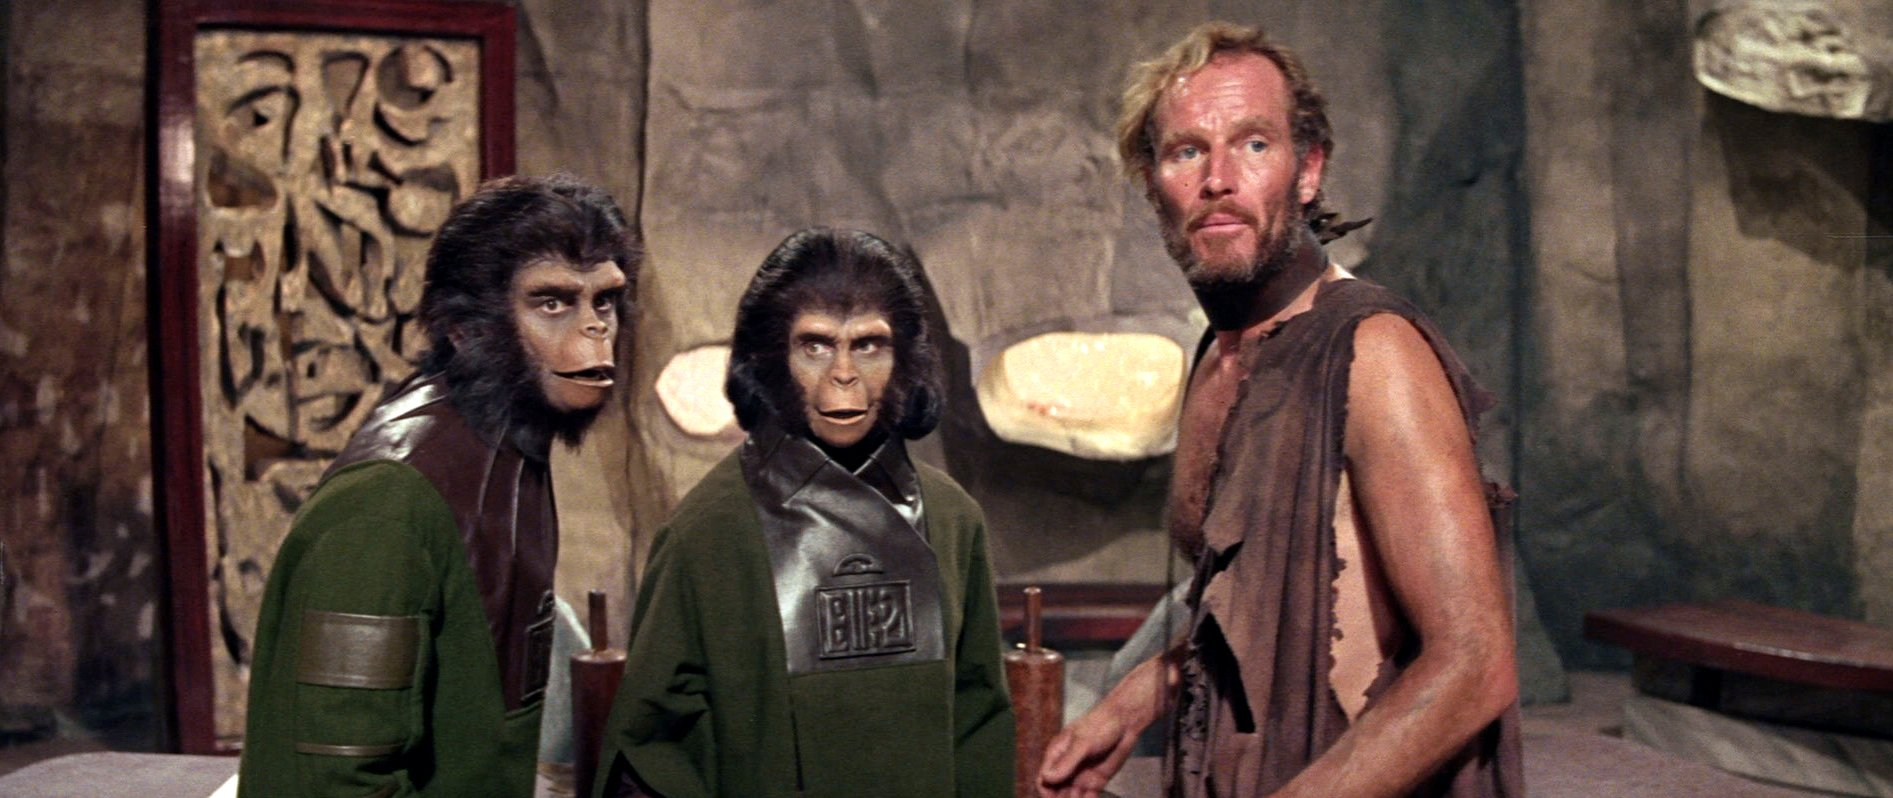 1. Planet of the Apes (1968)